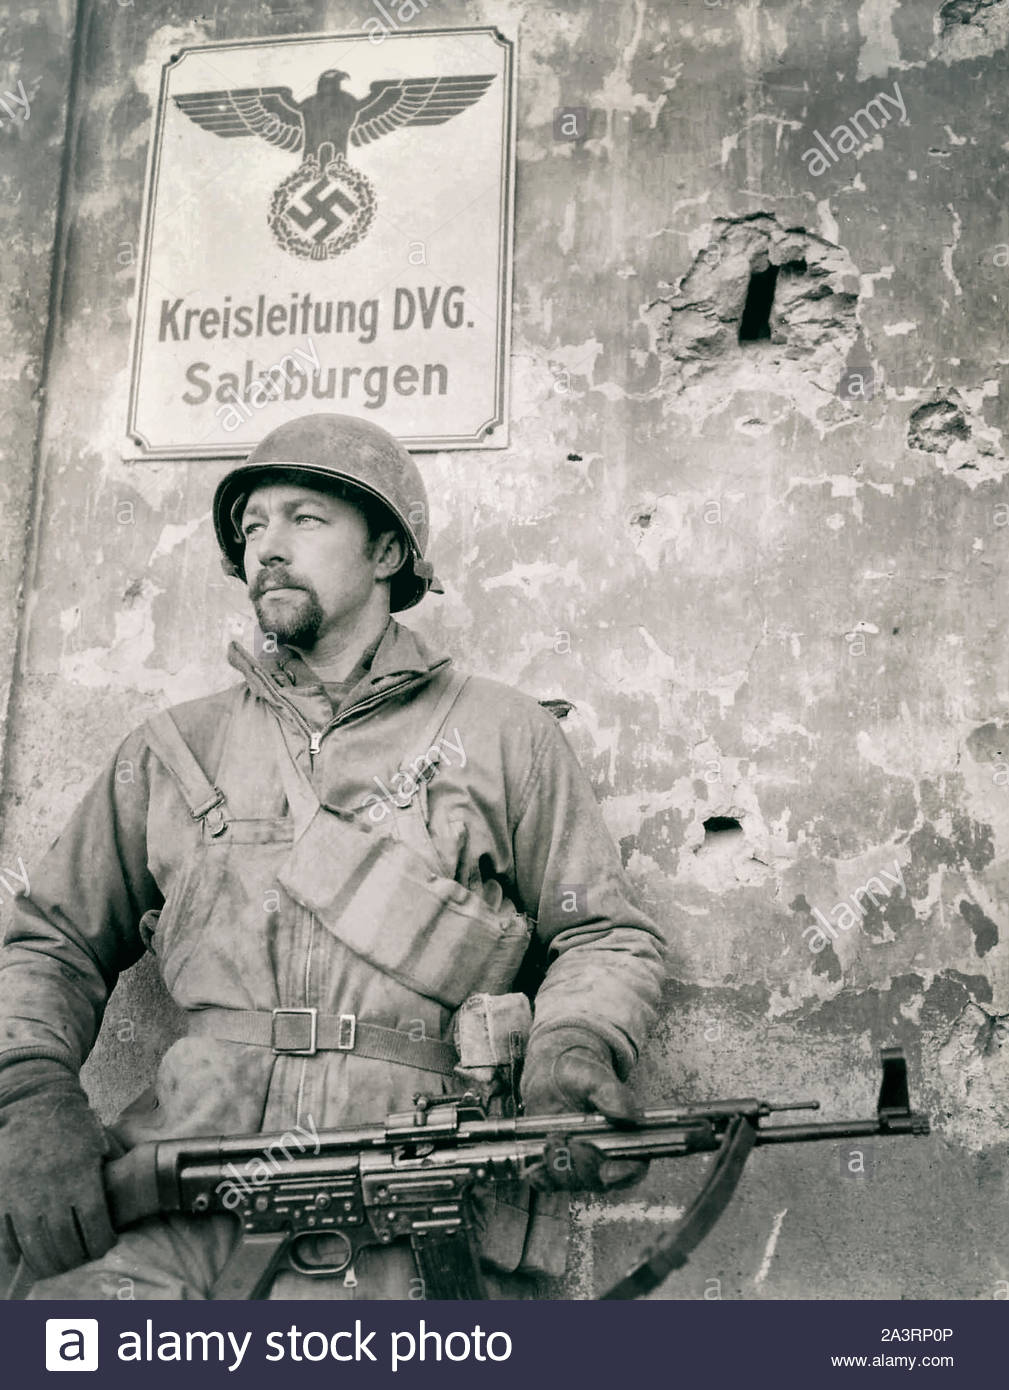 An American soldier from the 7th US Army is photographed with a captured German StG 44 assault rifle in the French city of Château-Salins (Salzburgen) Stock Photo